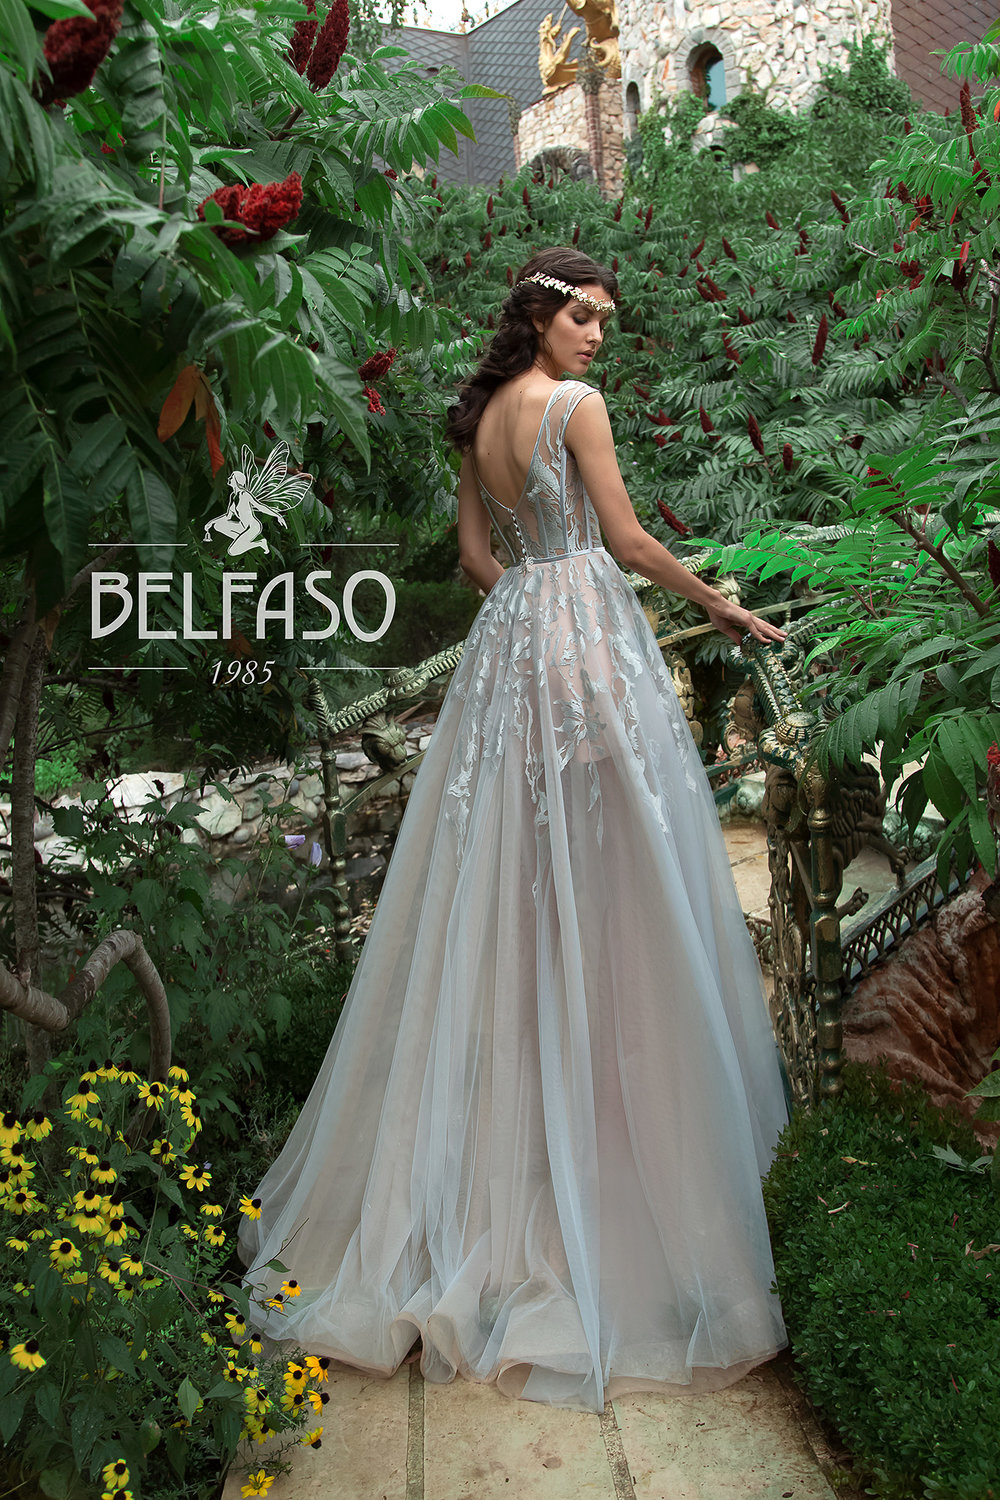 LILIT wedding dress by BELFASO